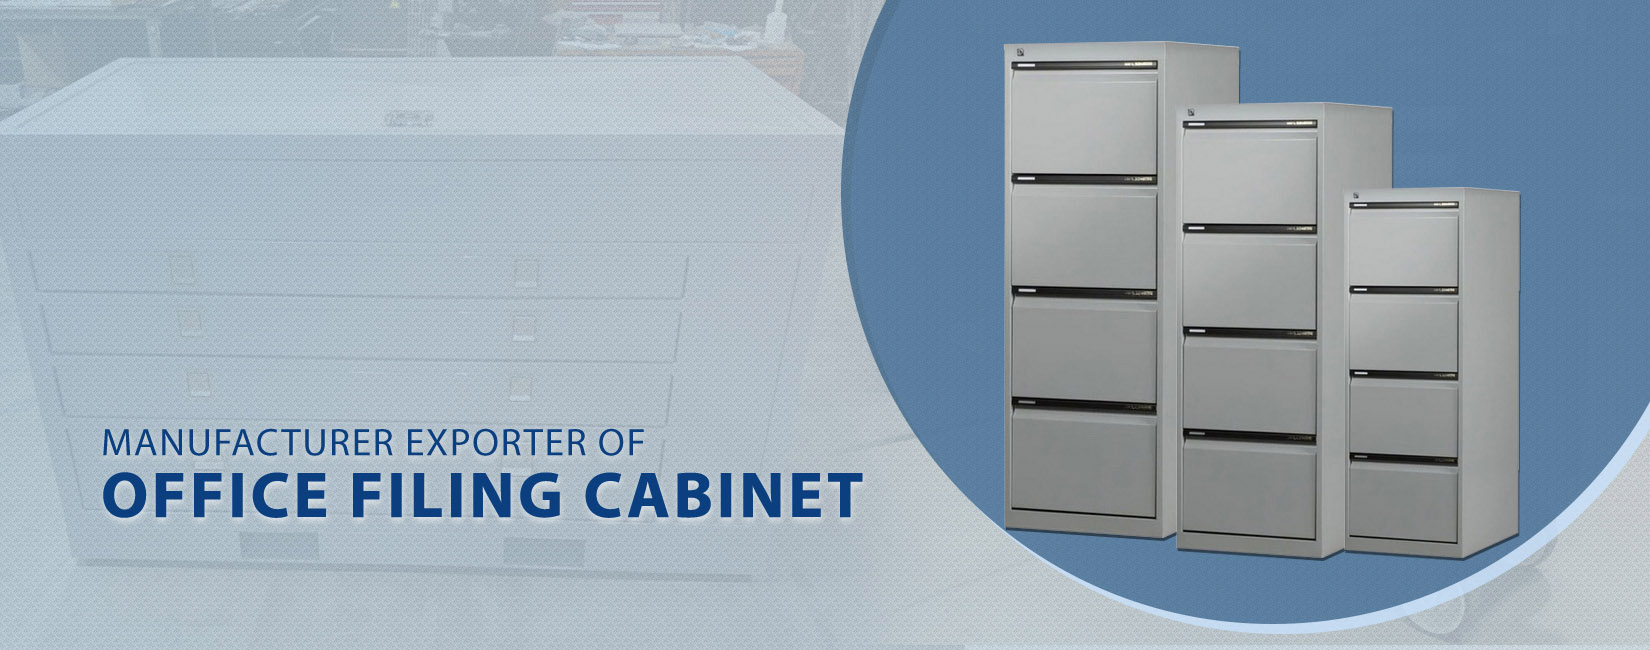 tool cabinet manufacturers in Ahmedabad, Gujarat